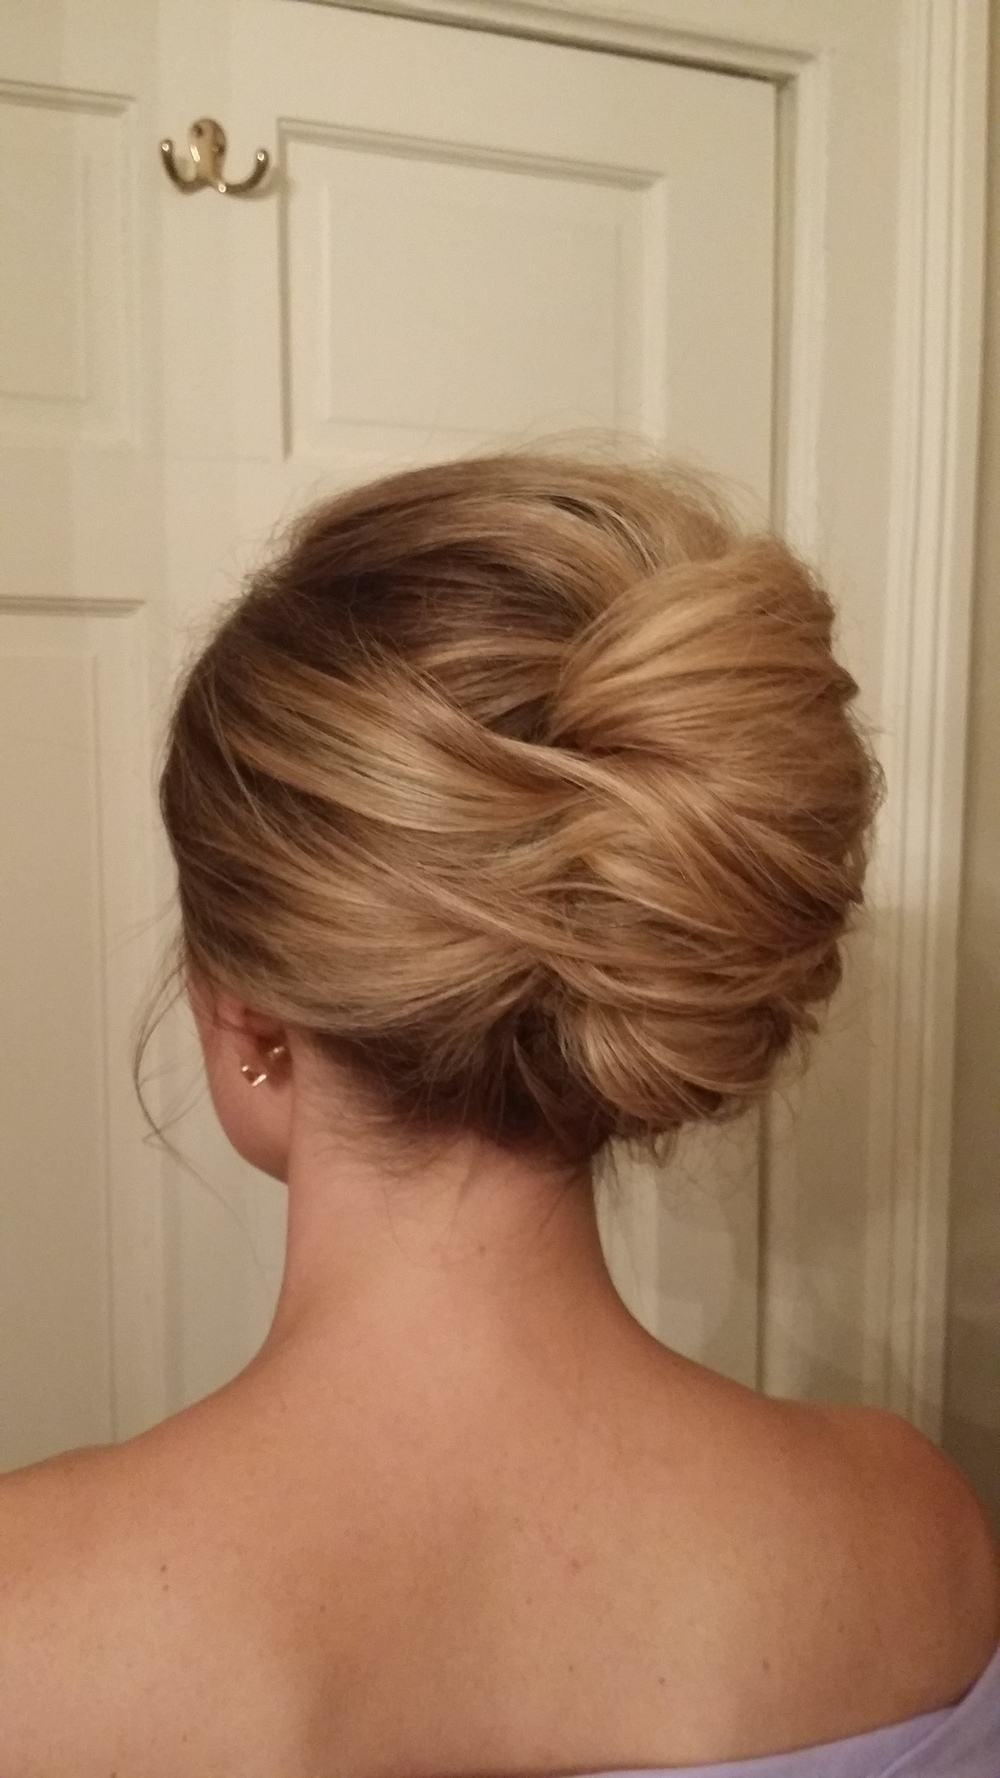 before after updo hair updos beyond beautiful by heather